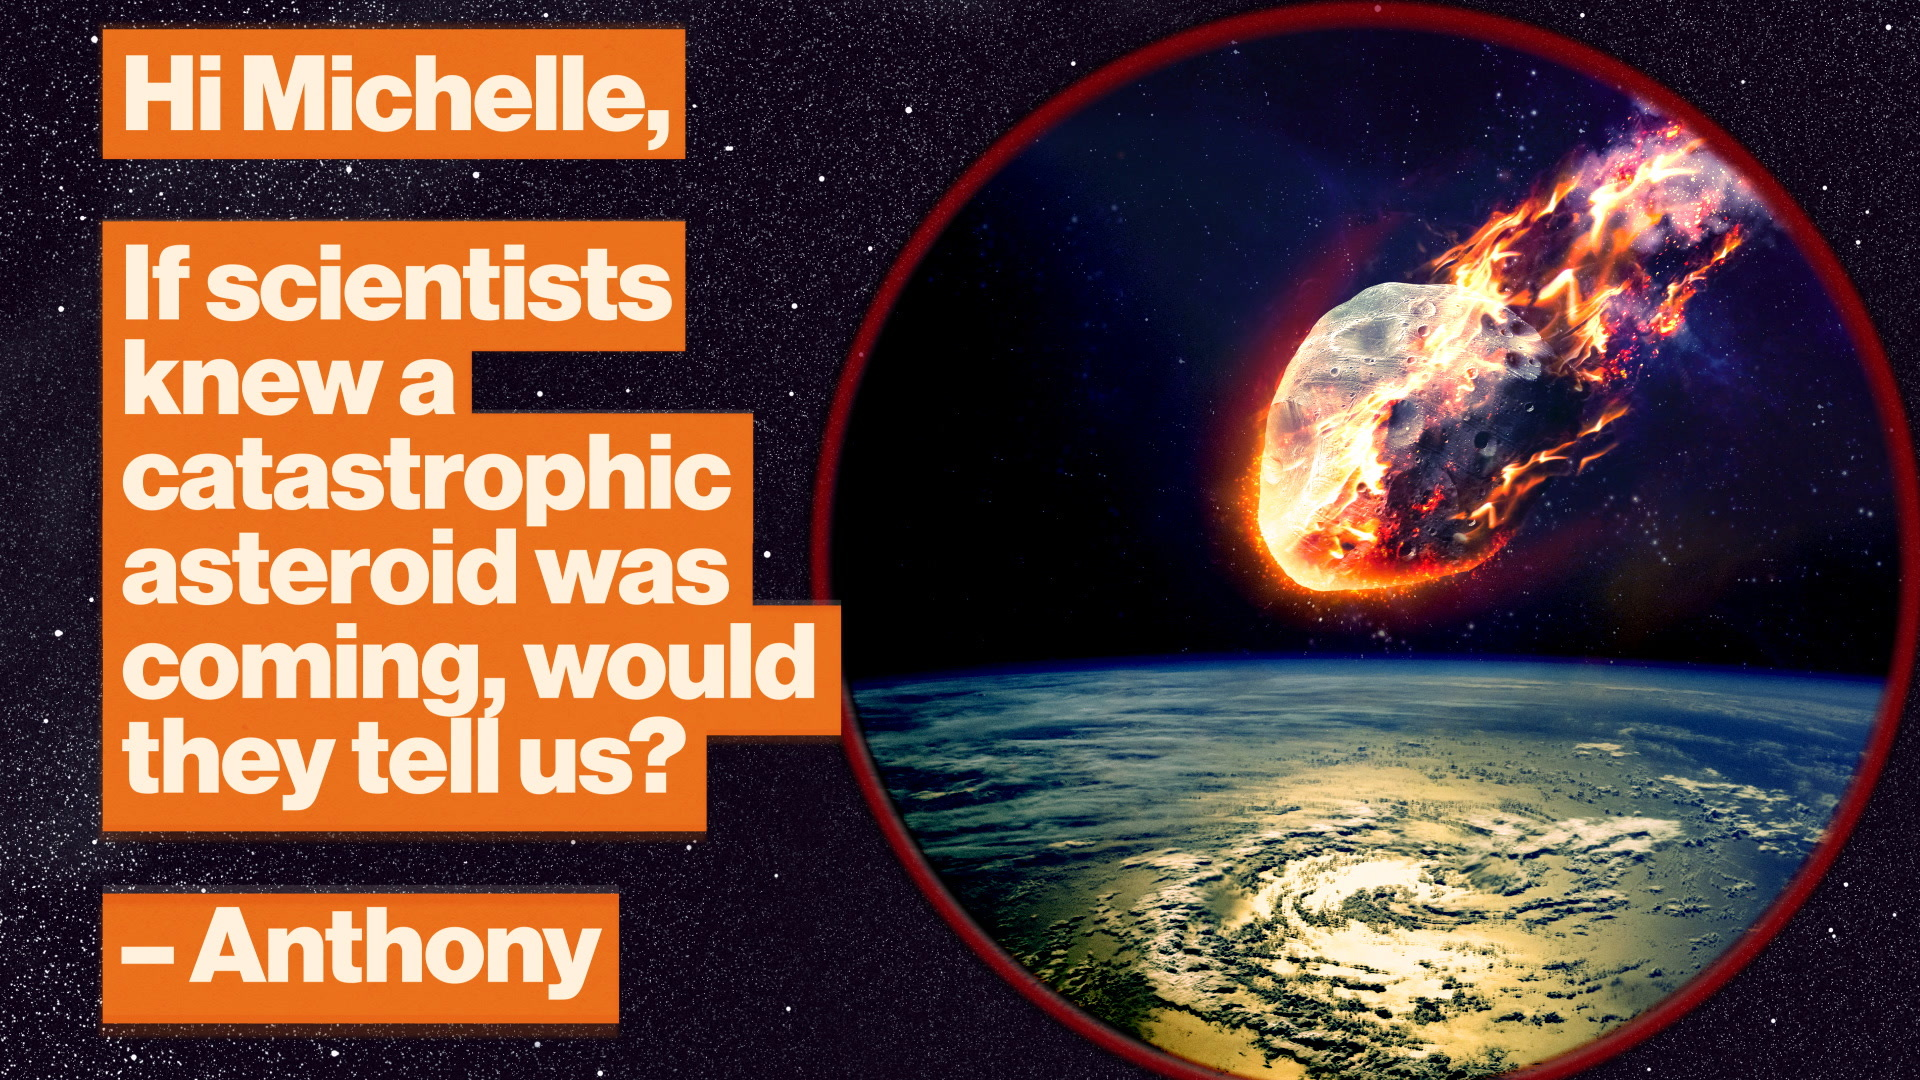 Would scientists tell us about a looming apocalypse?